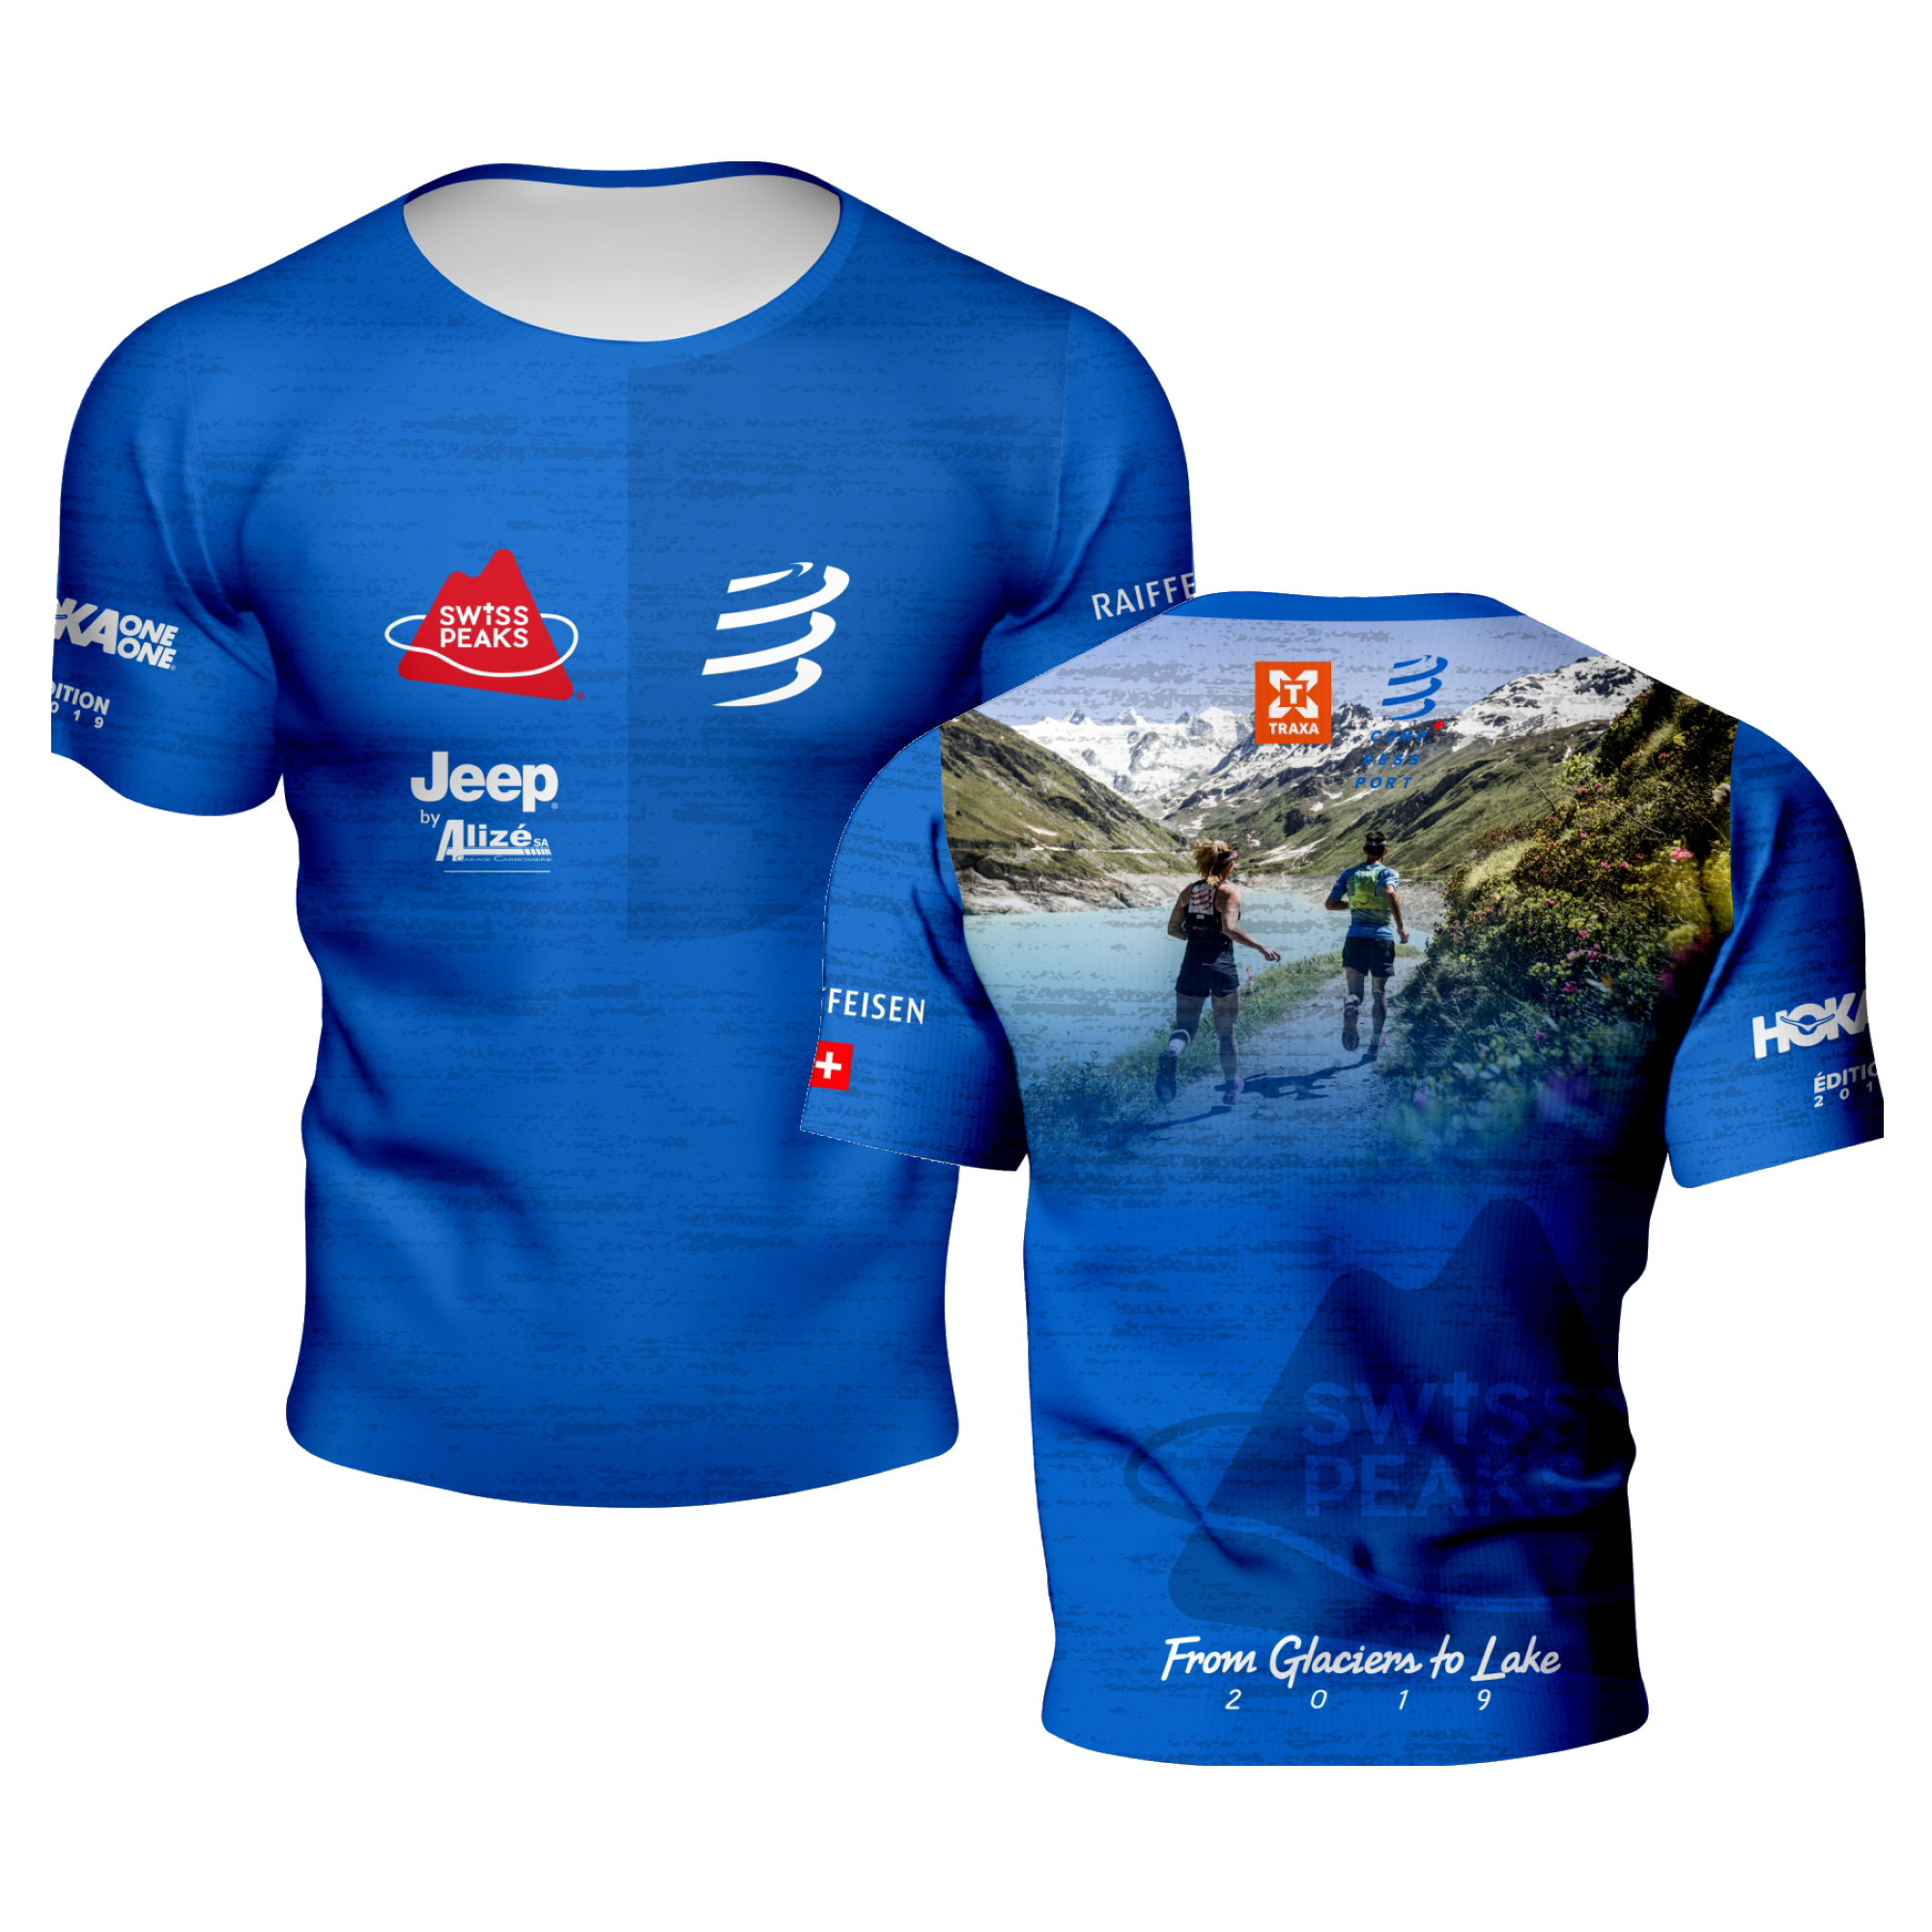 SwissPeaks Compressport Racer Shirt 2019